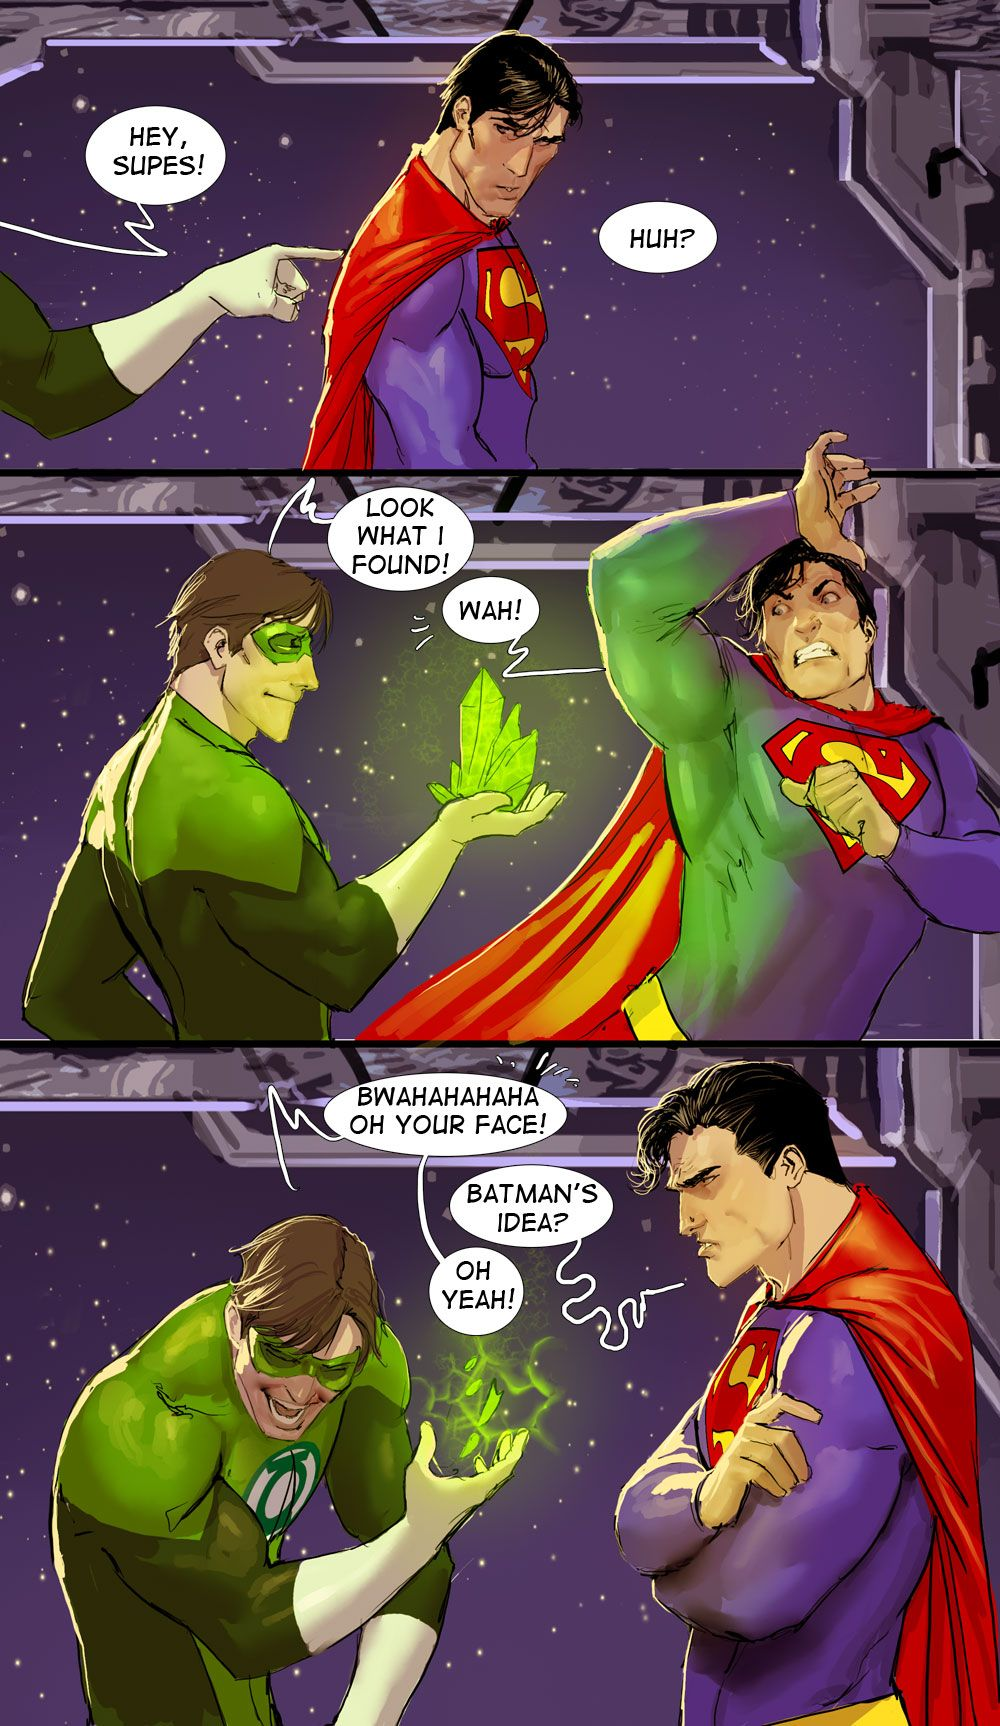 In brightest day, in blackest night, no prank opportunity shall escape my sight.